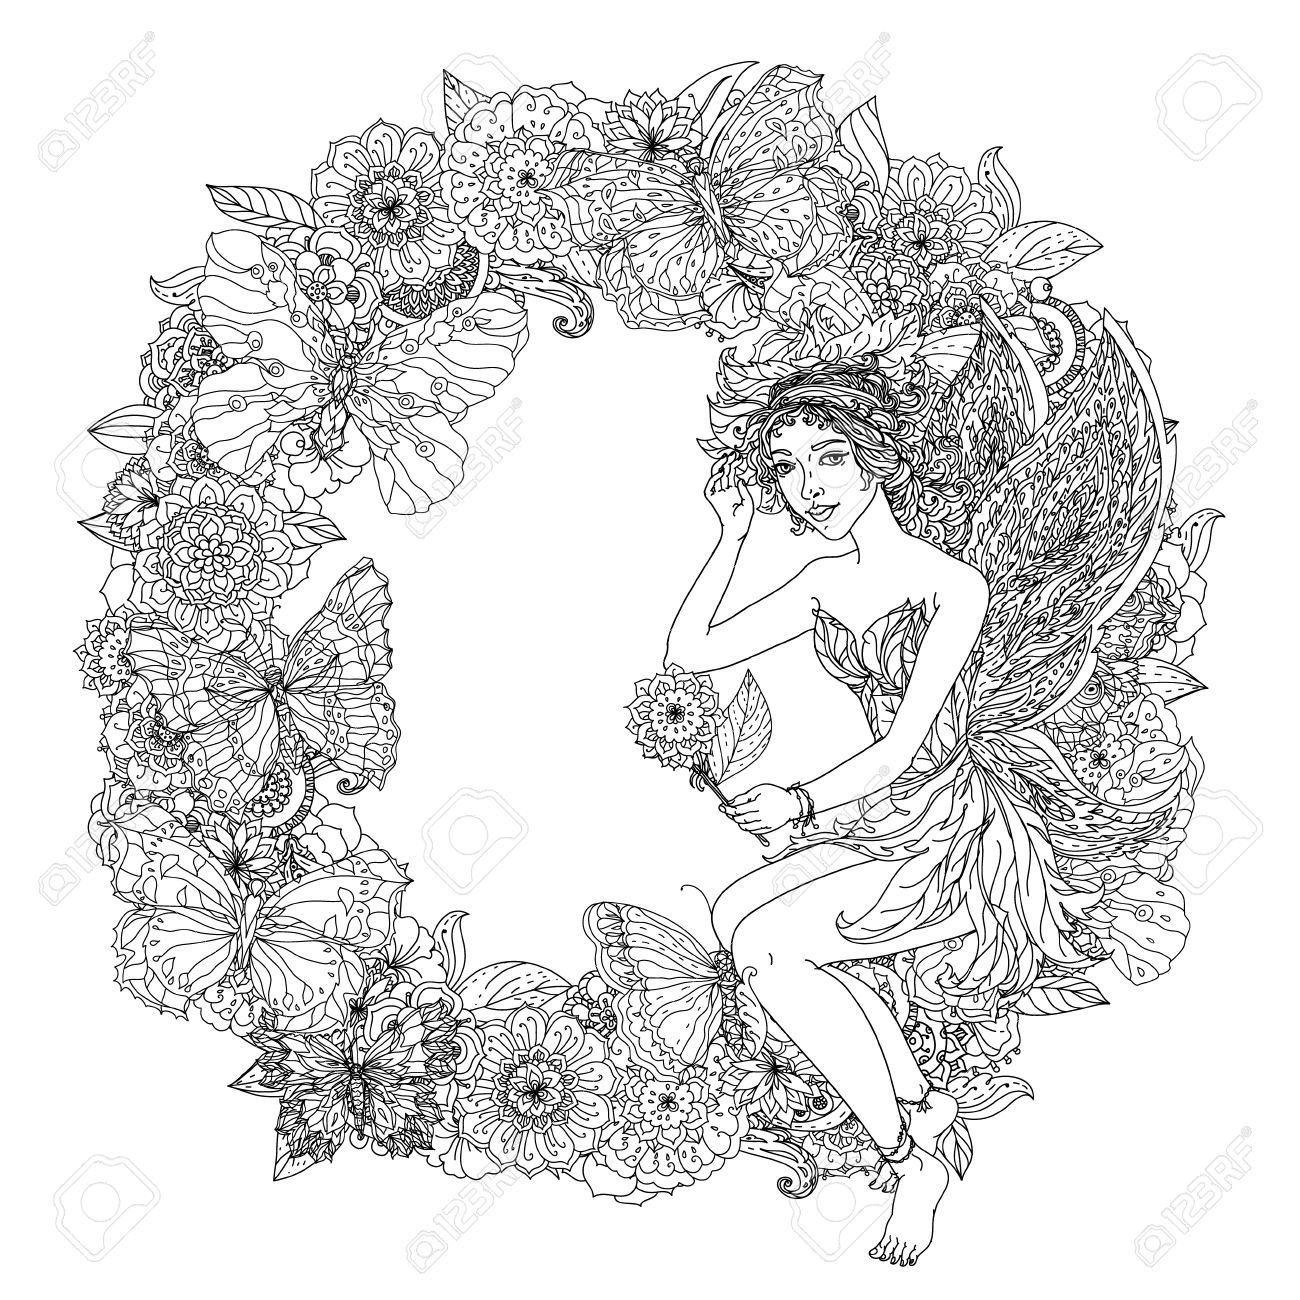 beautiful fashion woman with flowers in the image of a fairy